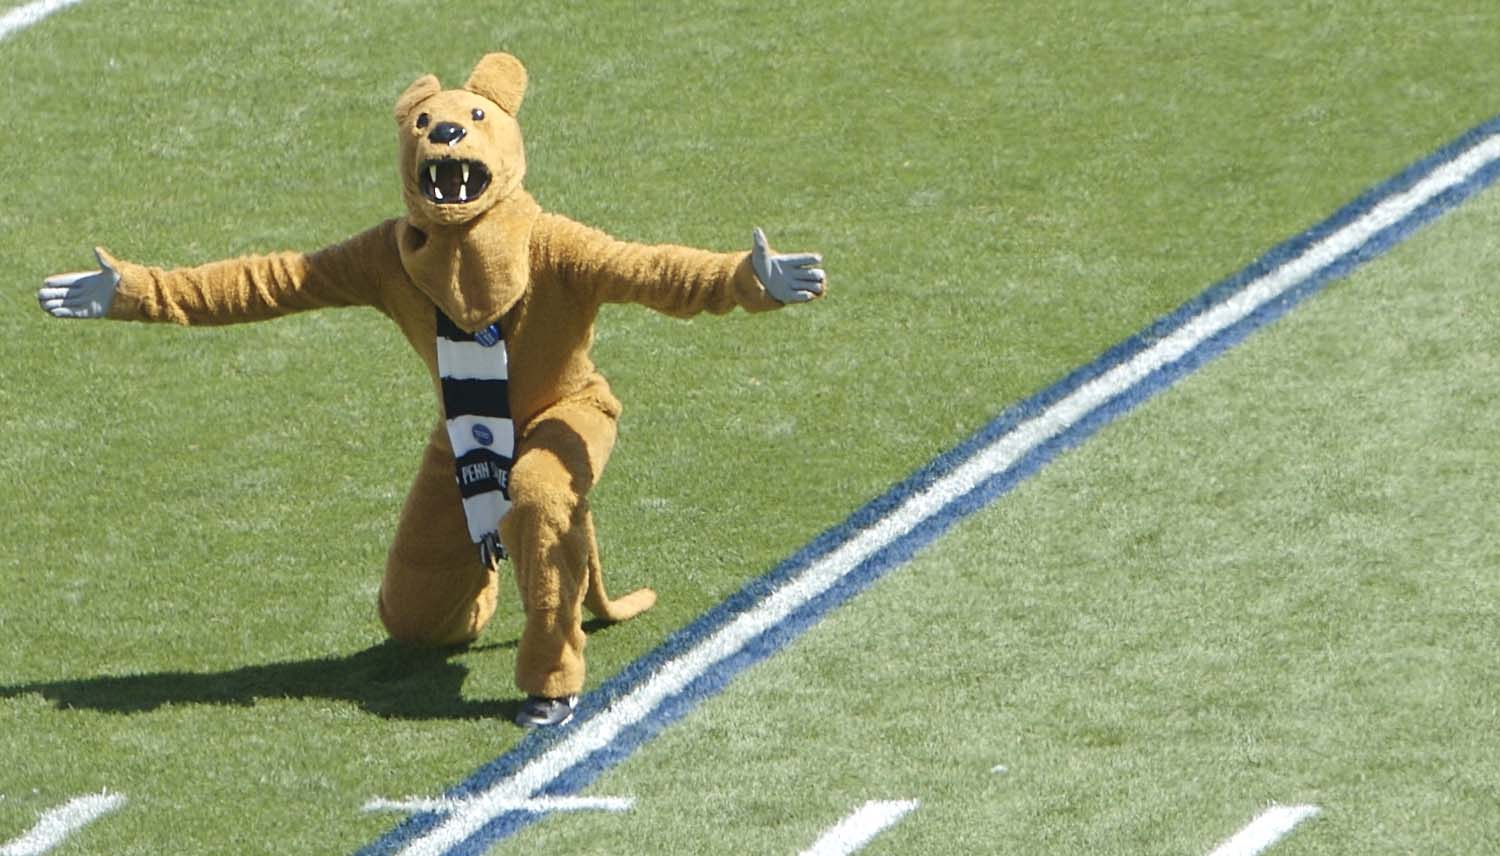 The Nittany Lion looks like a cheap knockoff.